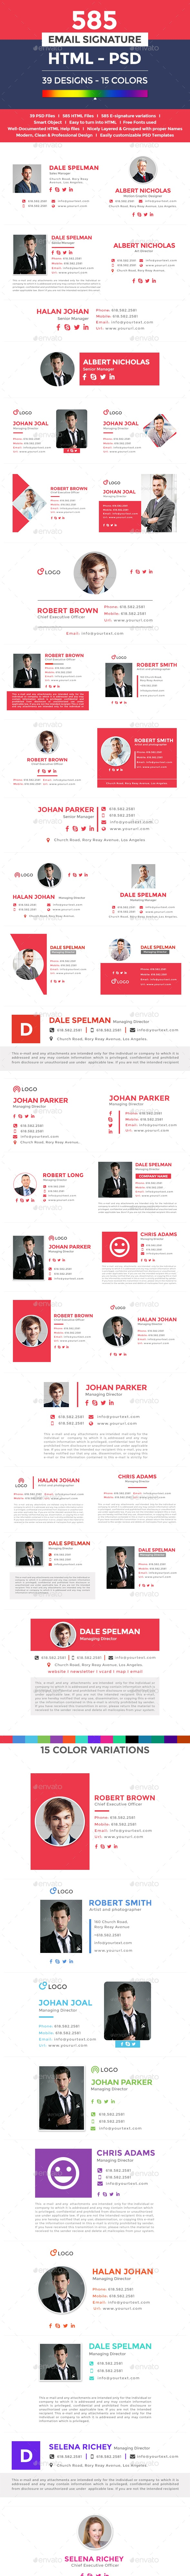 Flat & Modern Email Signatures - 585 HTML & PSD Files  - Miscellaneous Web Elements